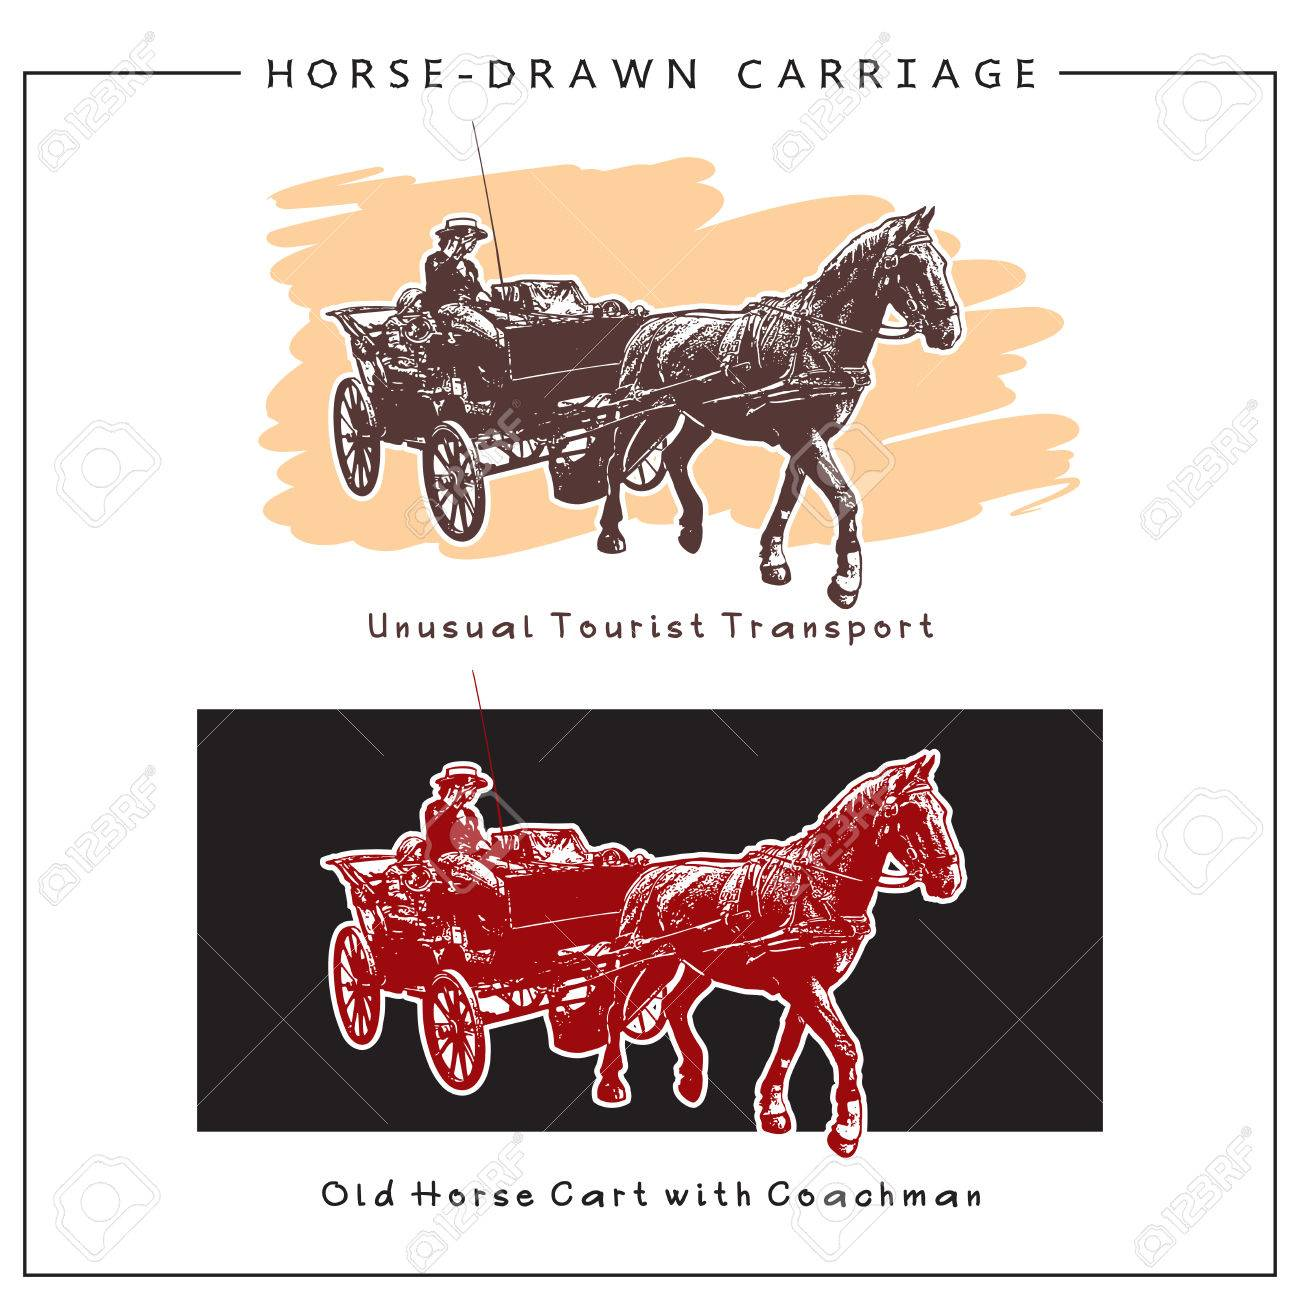 Image Of A Horse Drawn Carriage Horse Cart With Man Colored Royalty Free Cliparts Vectors And Stock Illustration Image 68283615